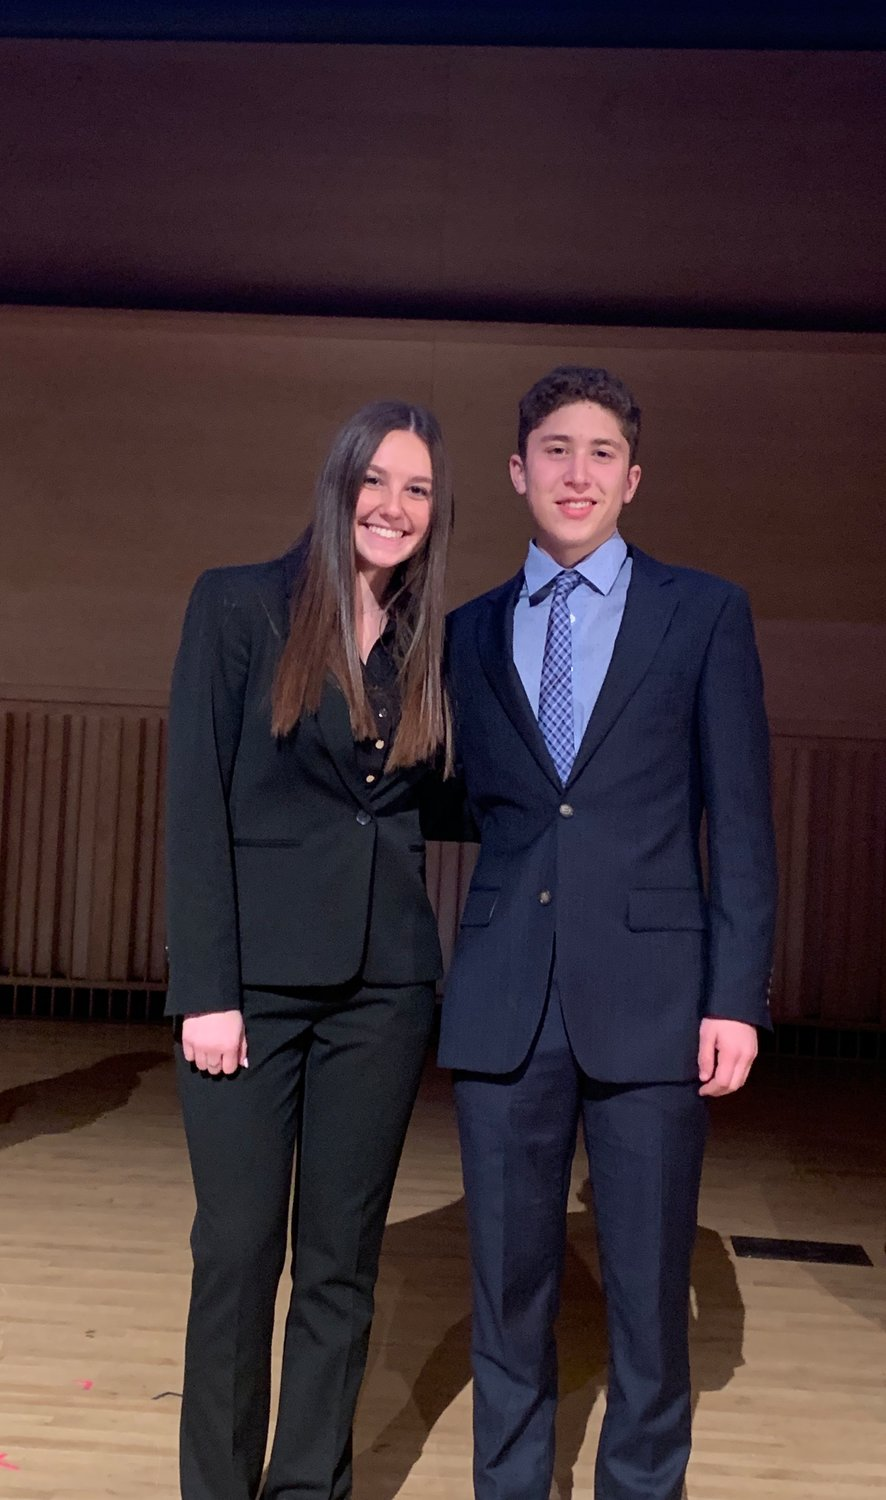 The 13th annual Adelphi University Apprentice Challenge was won by Hewlett High School seniors Anna Bromfeld and Brandon Lake.